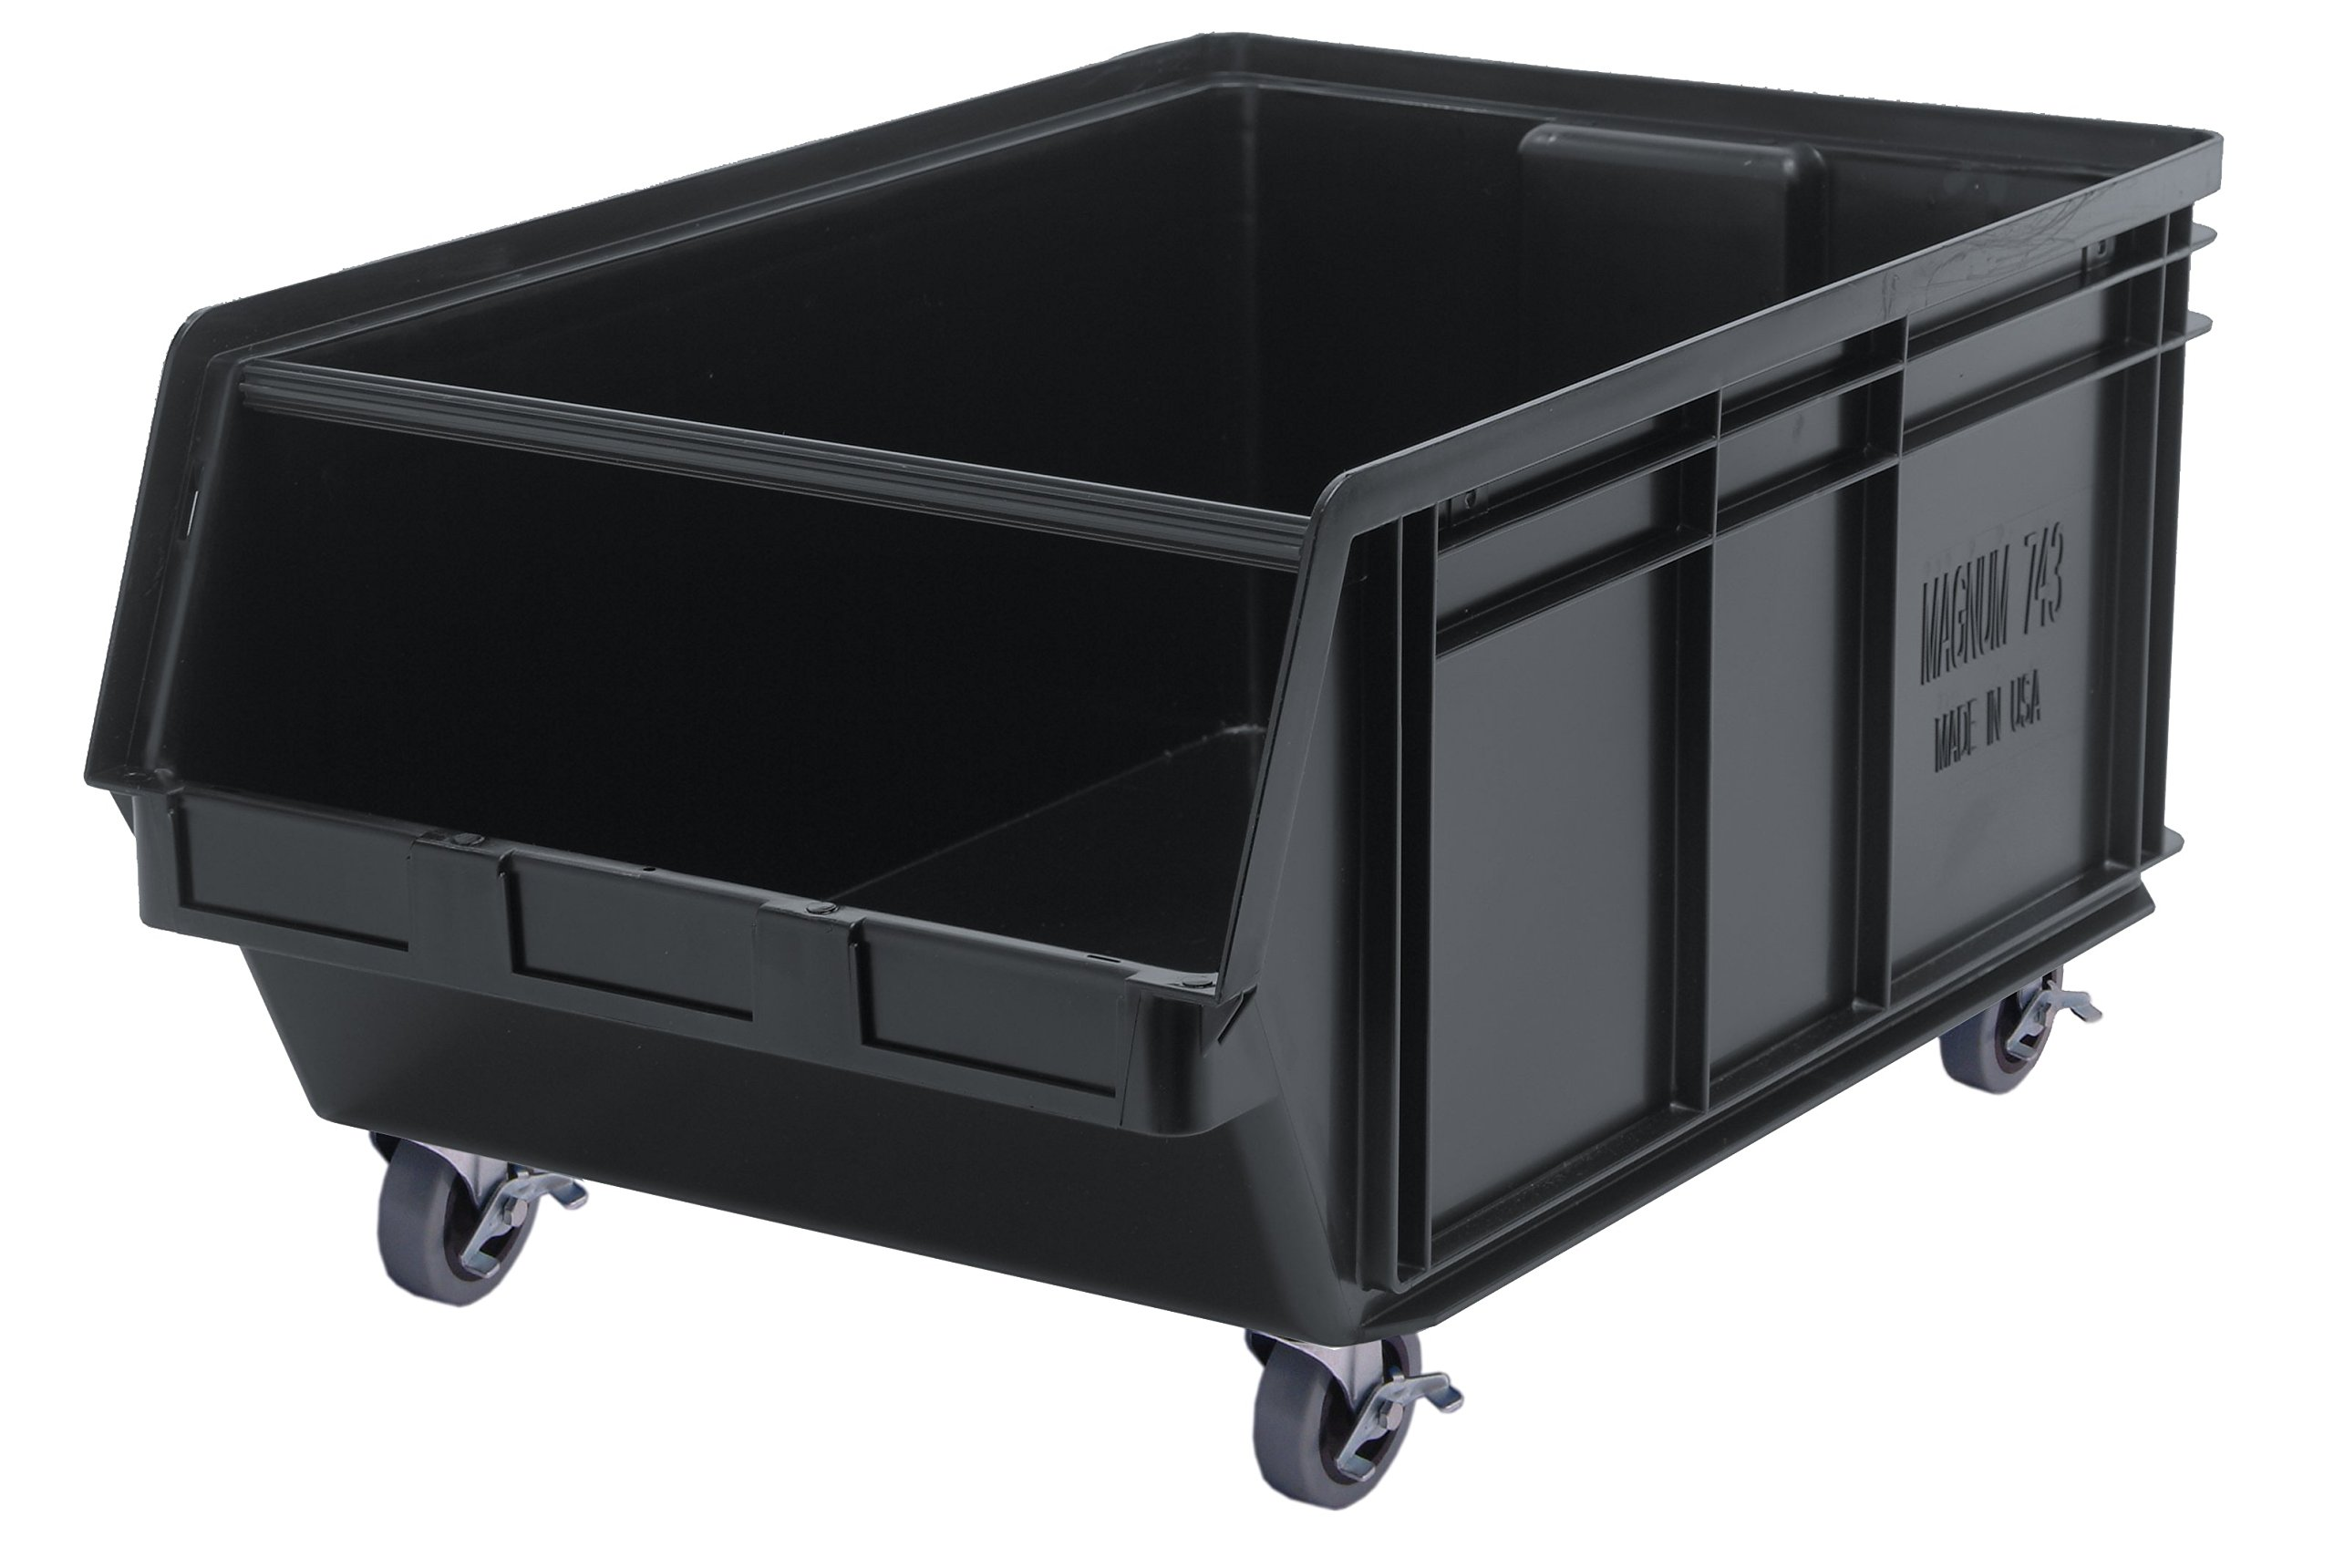 Quantum Storage Systems QMS843MOBBK Heavy Duty Mobile Magnum Bin with Spread Bar, 29'' x 18-3/8'' x 14-7/8'', Black by Quantum Storage Systems